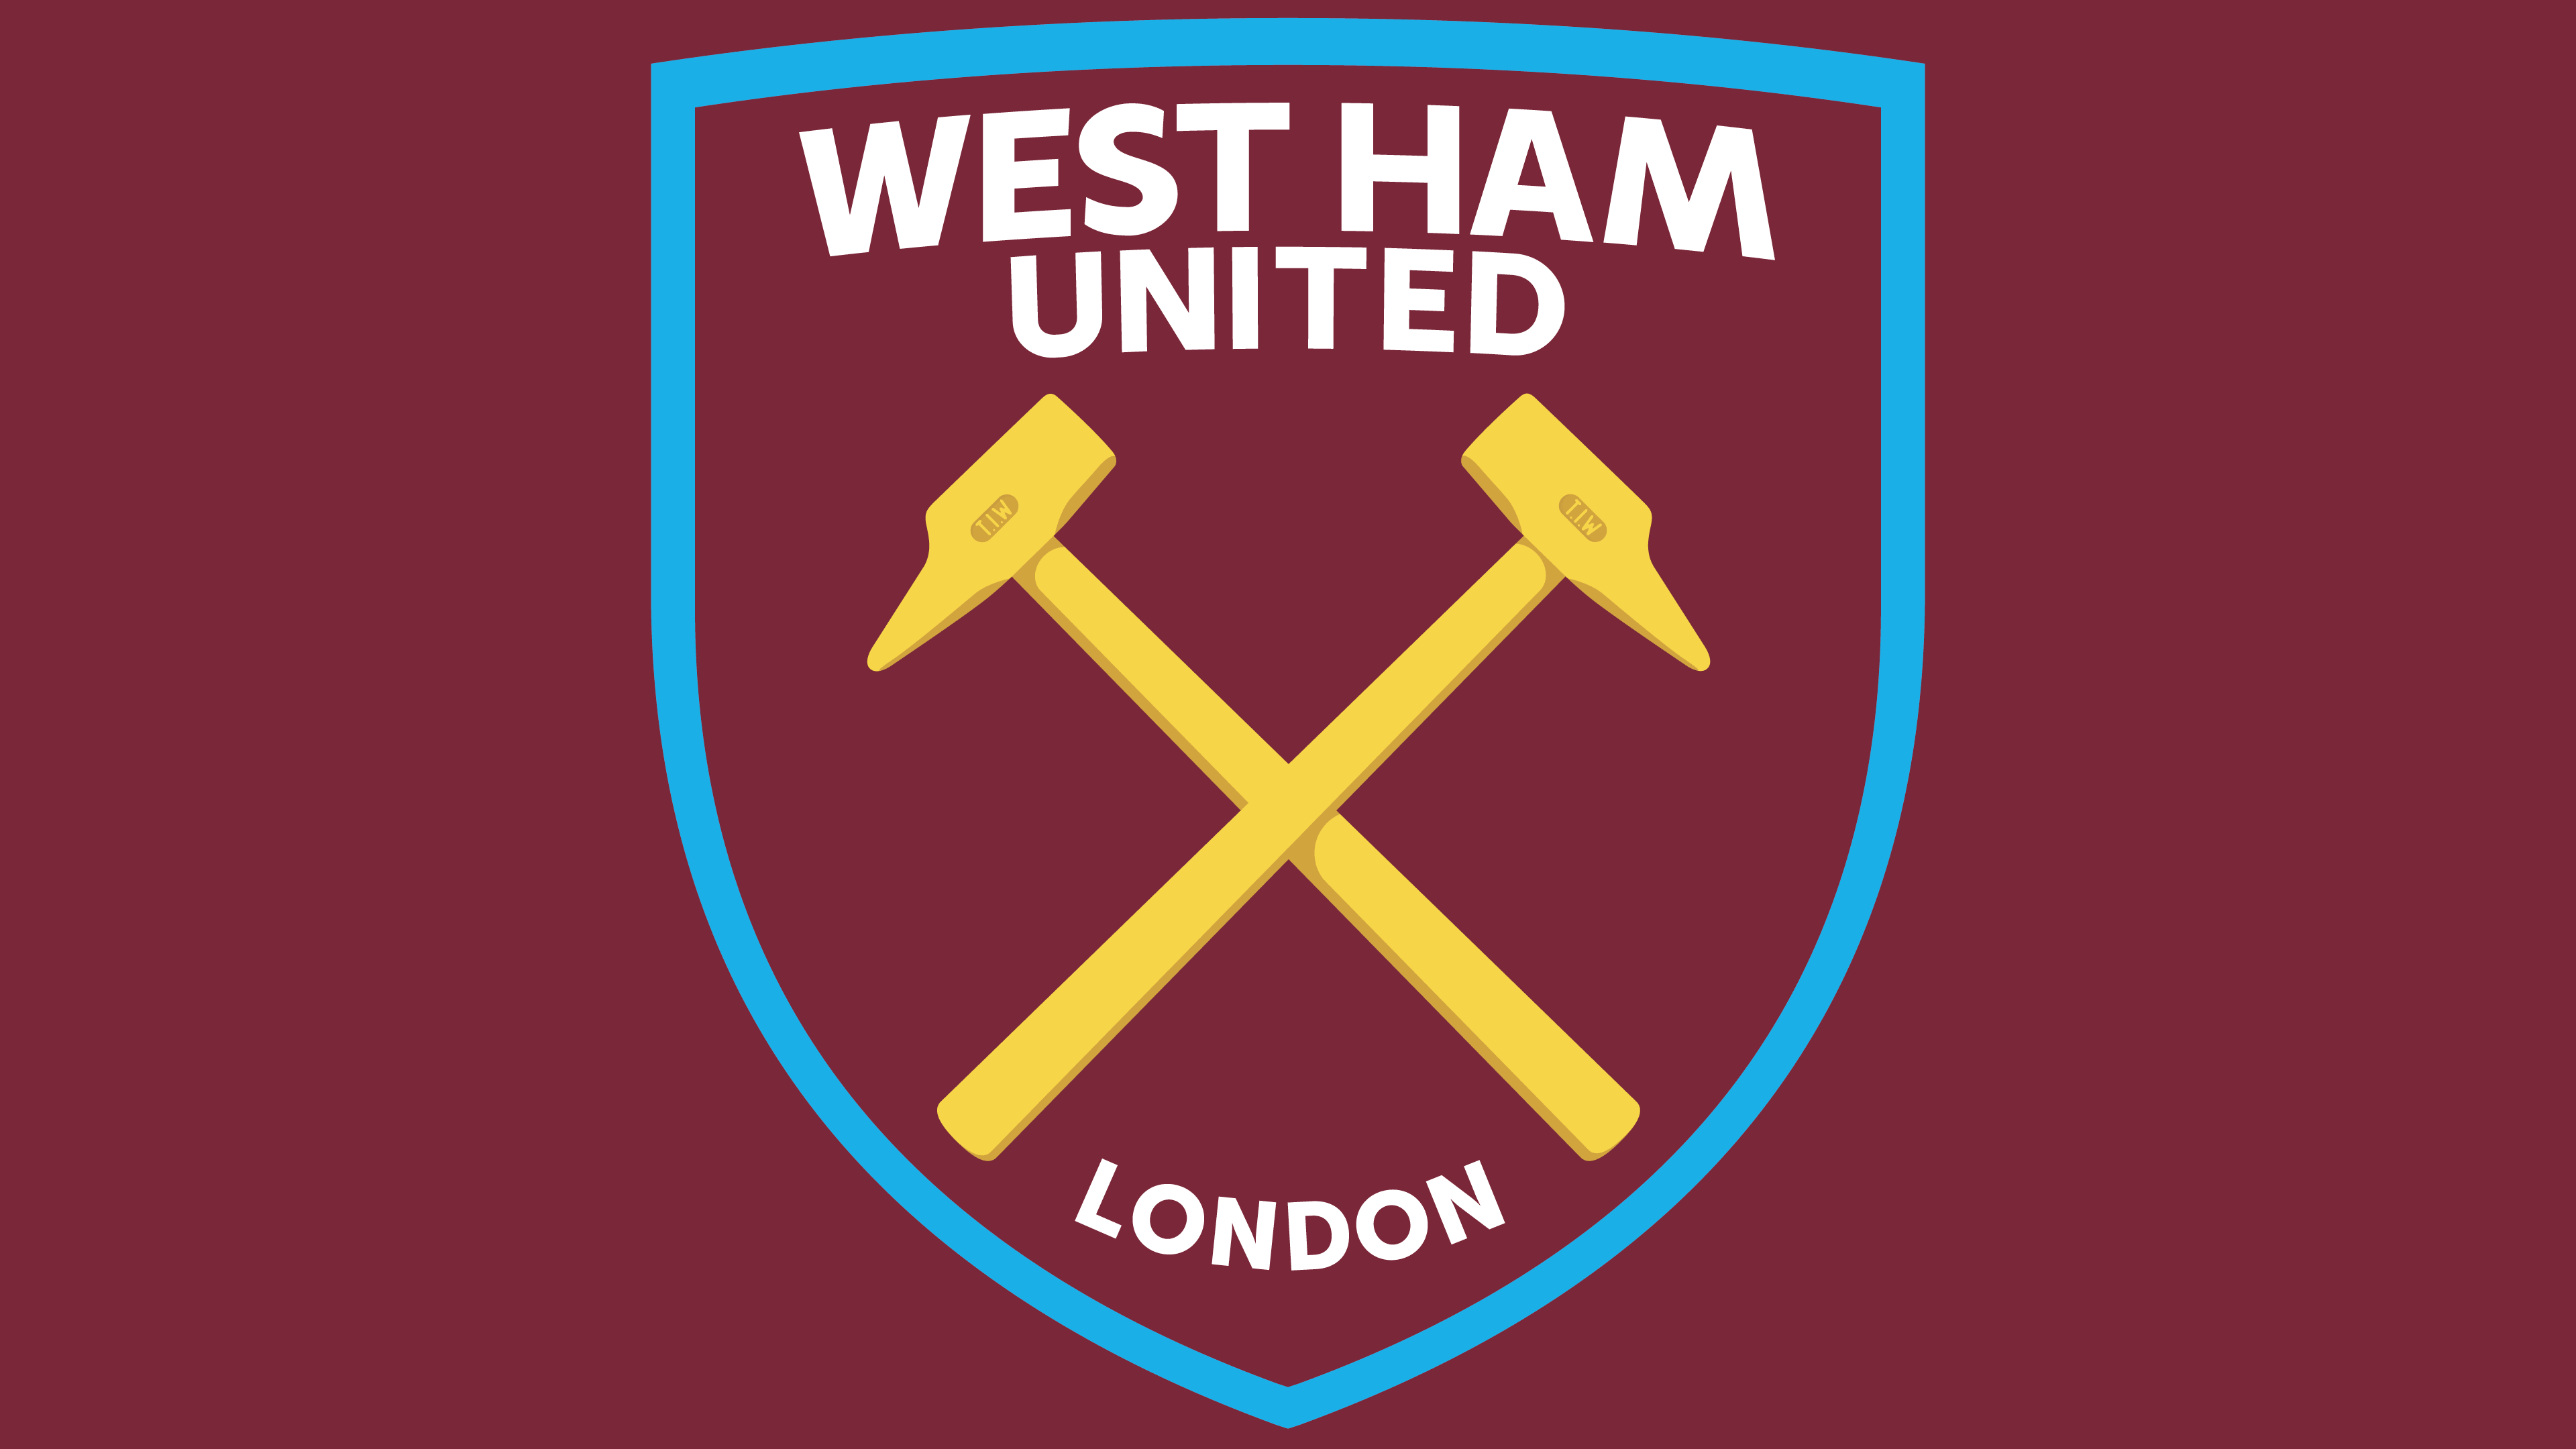 West Ham - The Hammers